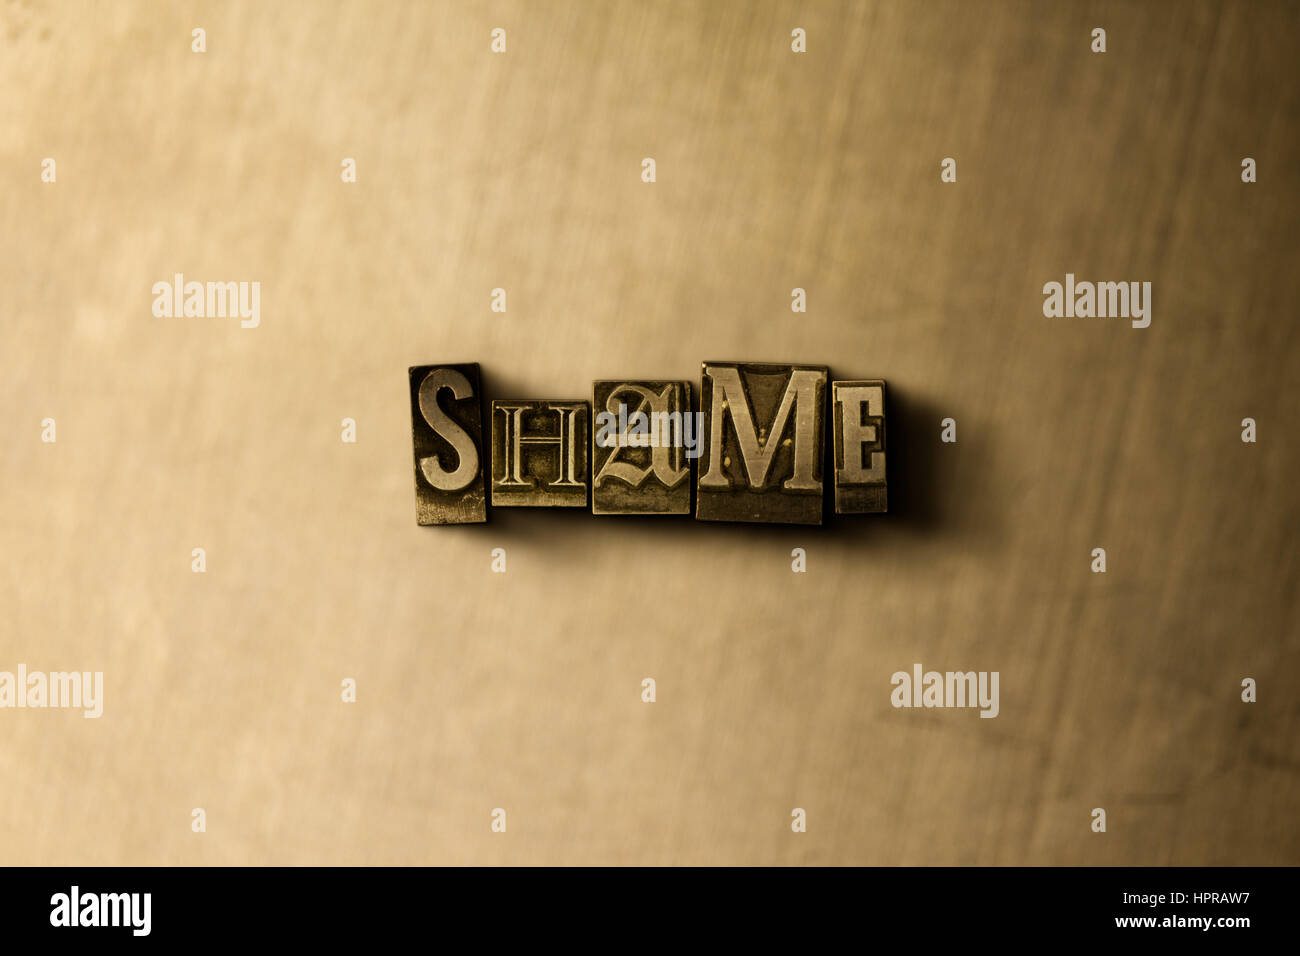 SHAME - close-up of grungy vintage typeset word on metal backdrop. Royalty free stock illustration.  Can be used - Stock Image